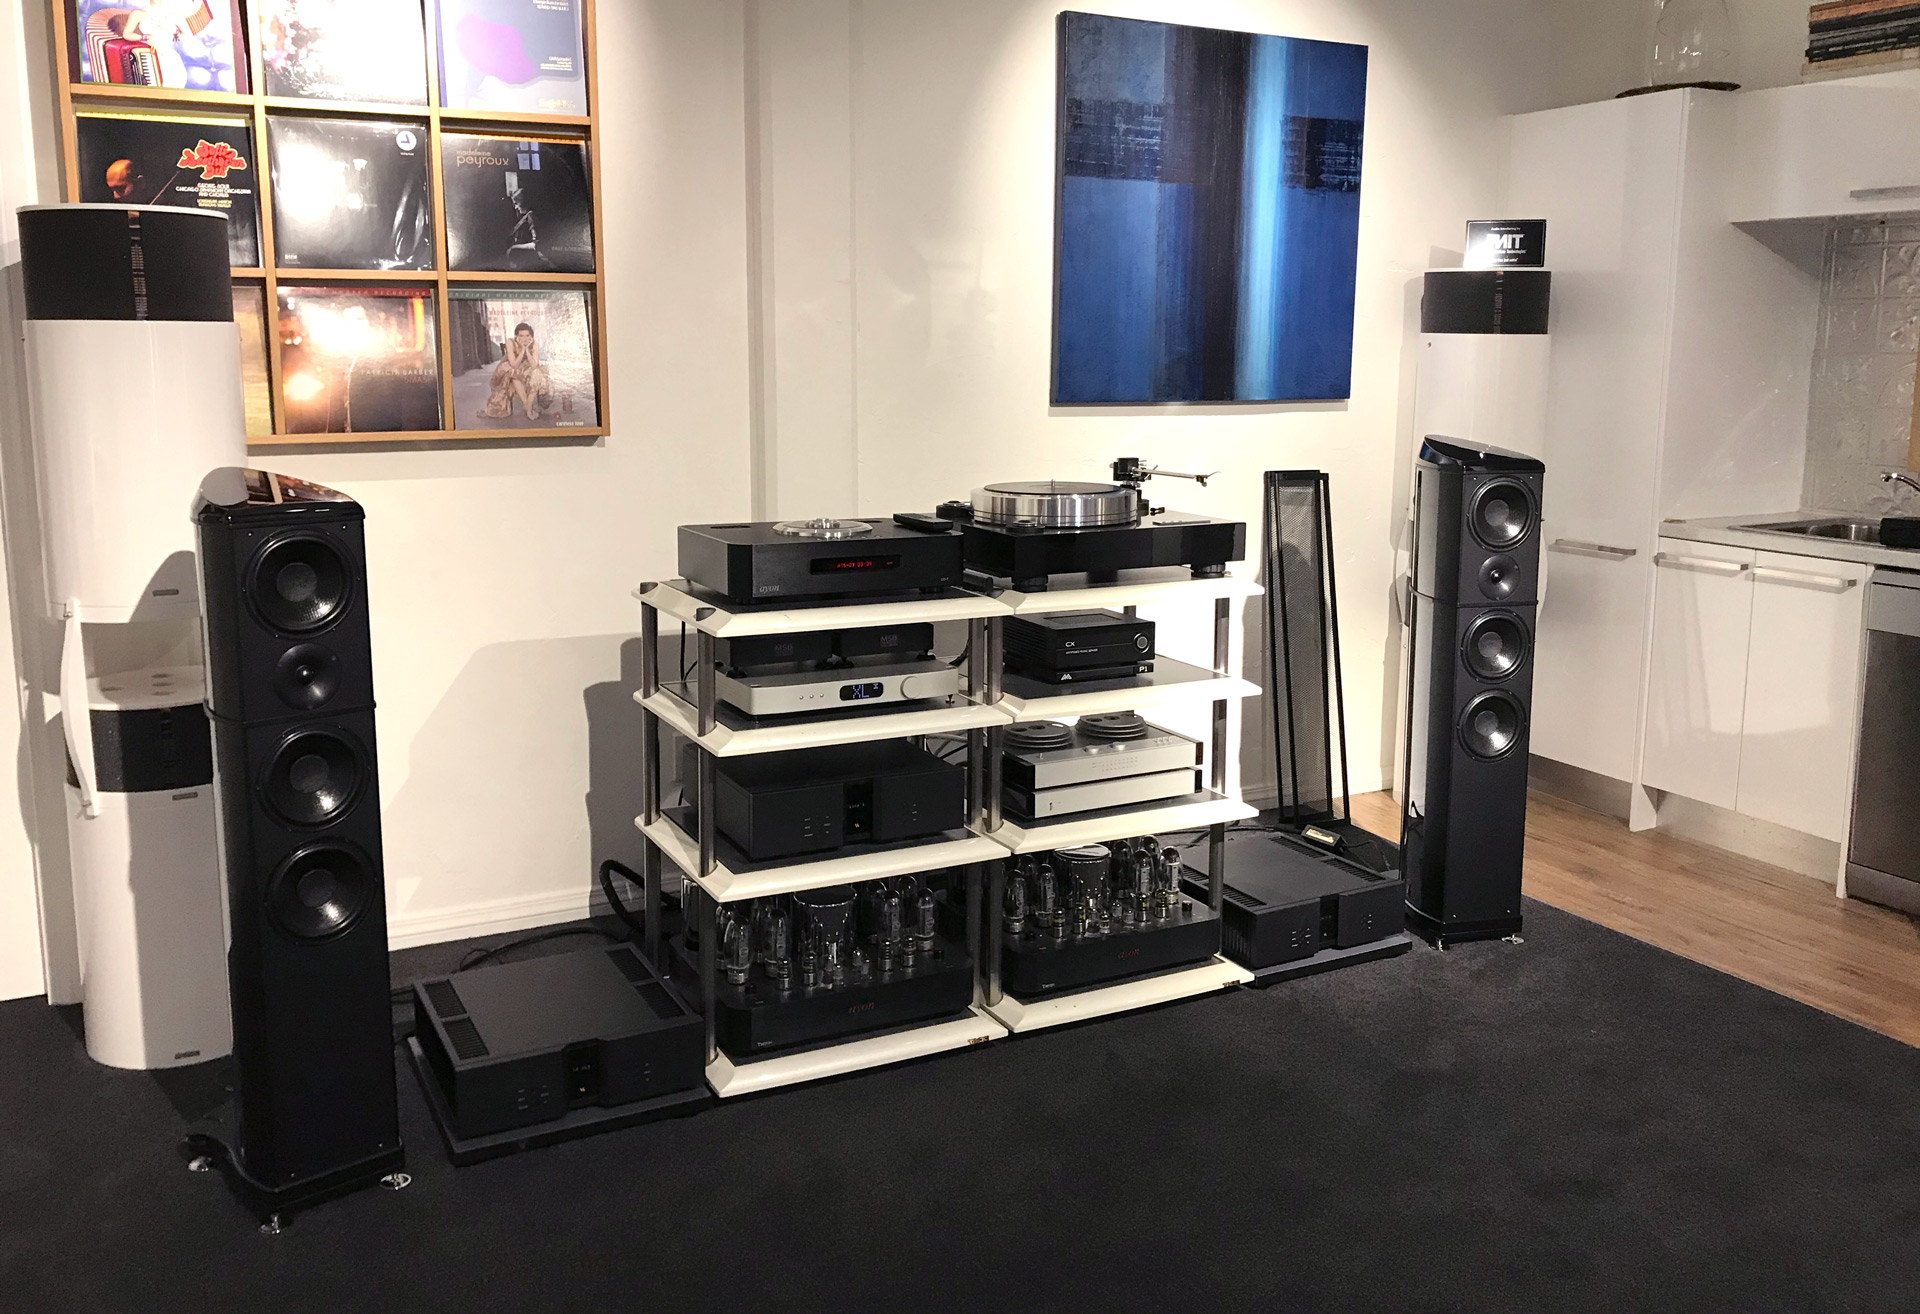 Wilson Benesch - Audio Reference - Importer - New Zealand - Loudspeakers - Turntables - HIFI Racks